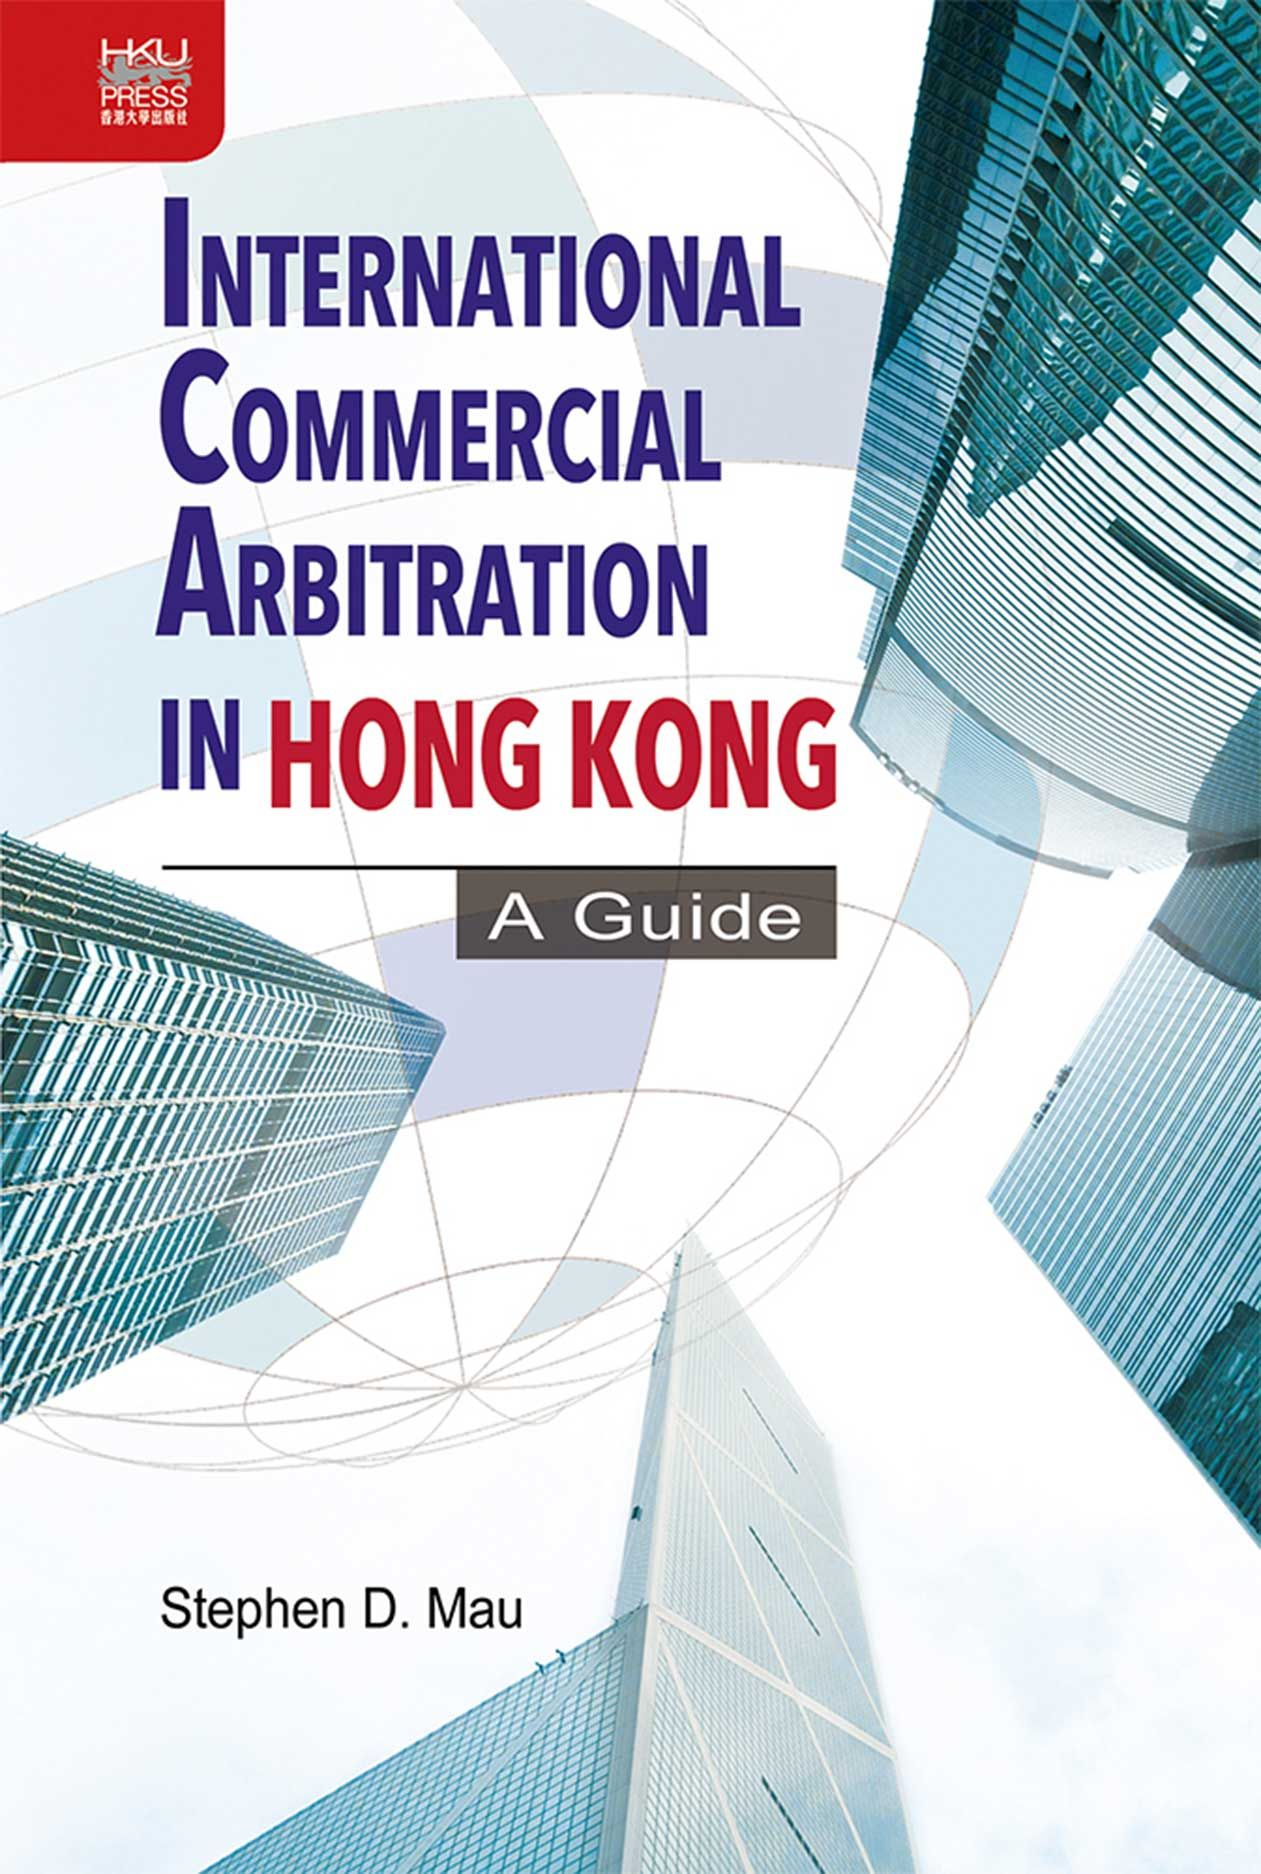 International Commercial Arbitration in Hong Kong